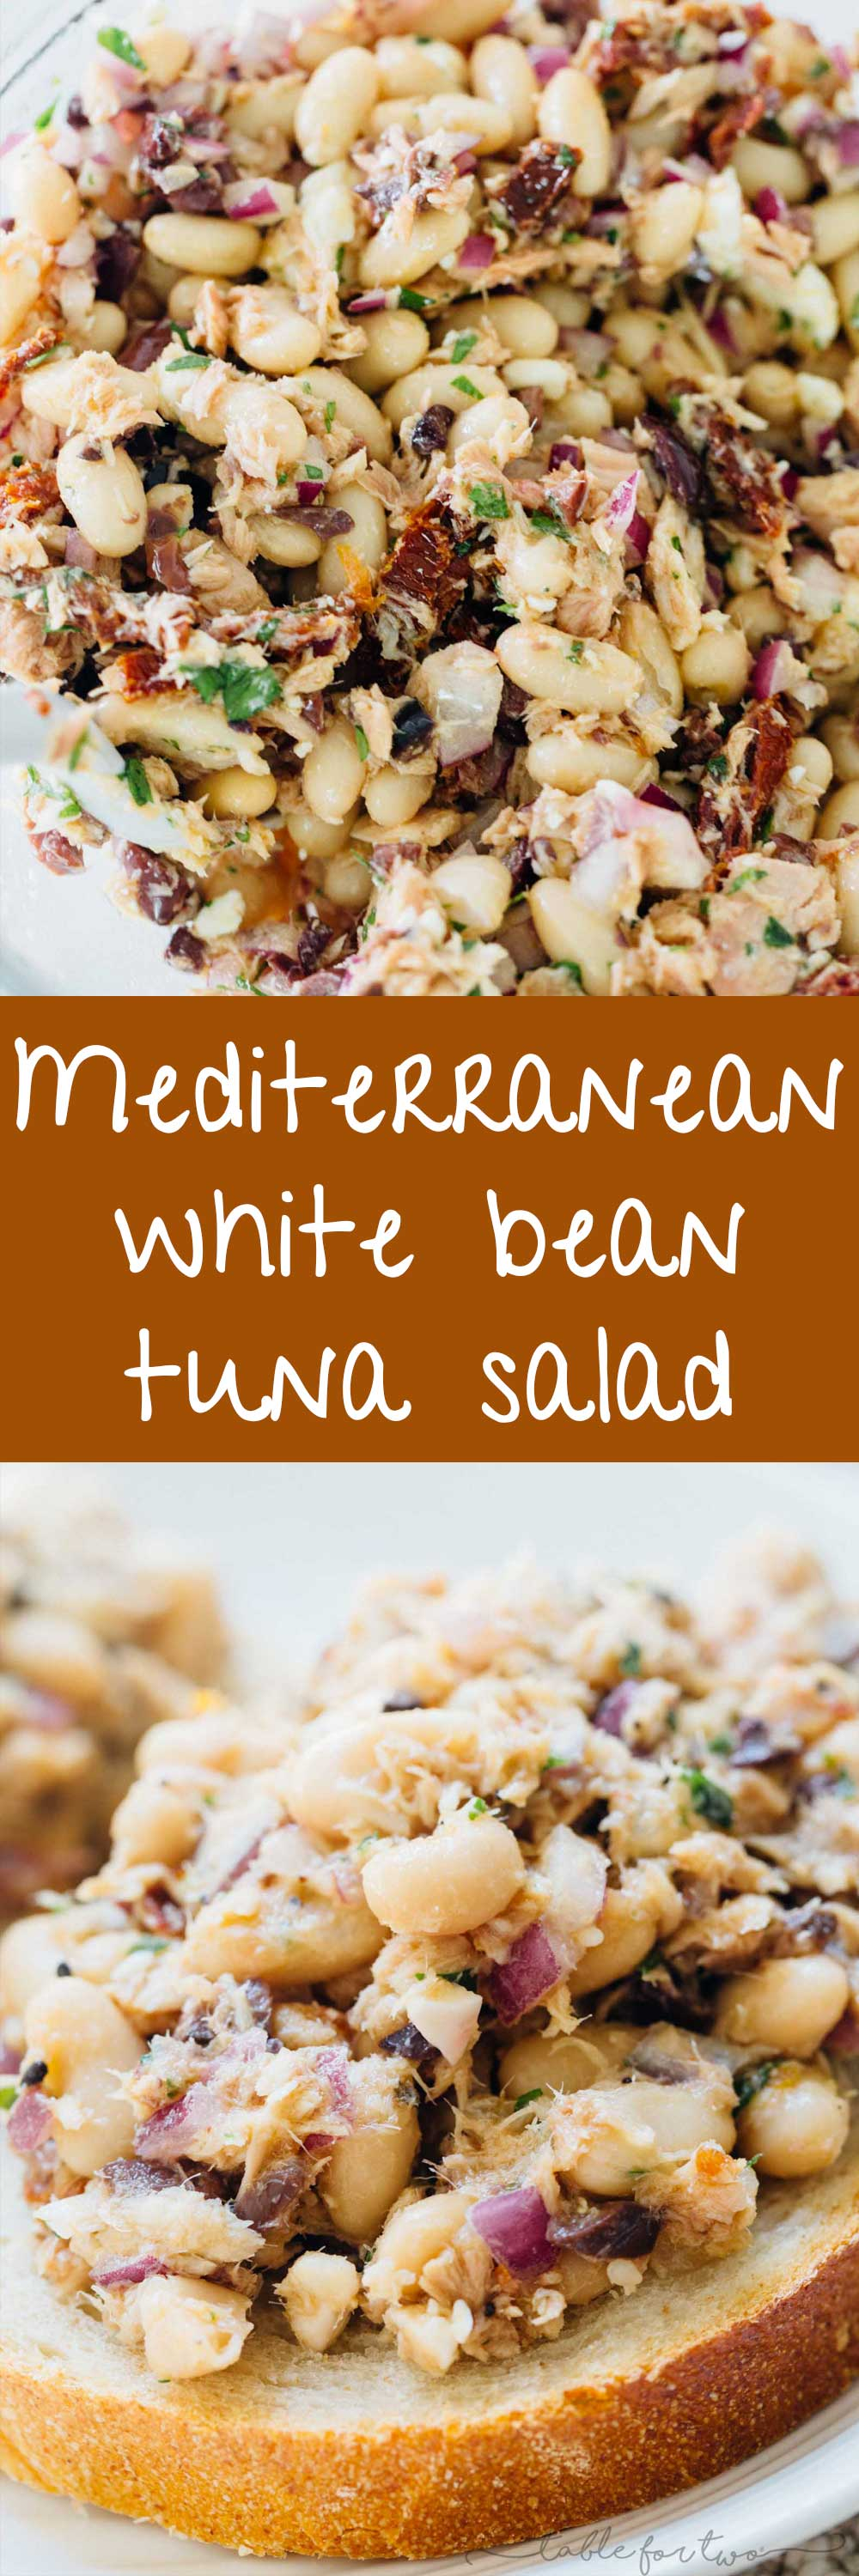 Mediterranean tuna white bean salad is full of flavorful ingredients and deliciously tasty tuna that is full of protein! An easy and healthy lunch option for those who are looking for new lunch ideas that will keep you full!